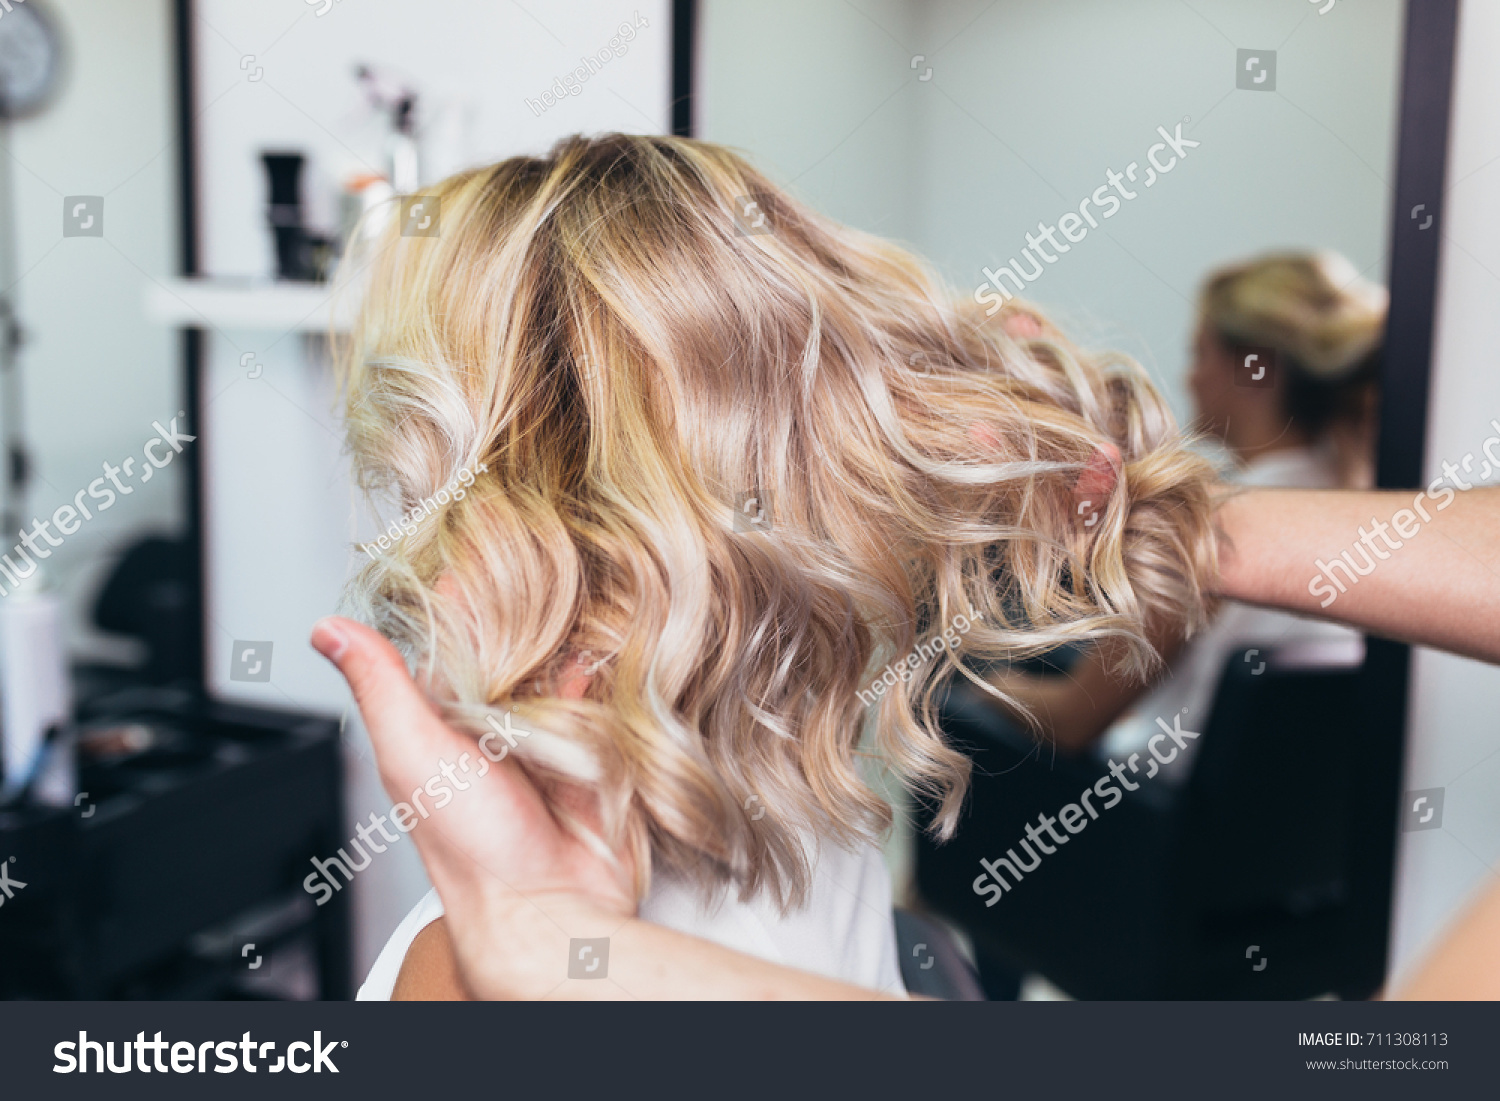 Beautiful hairstyle young woman after dying stock photo 711308113 beautiful hairstyle of young woman after dying hair and making highlights in hair salon pmusecretfo Gallery